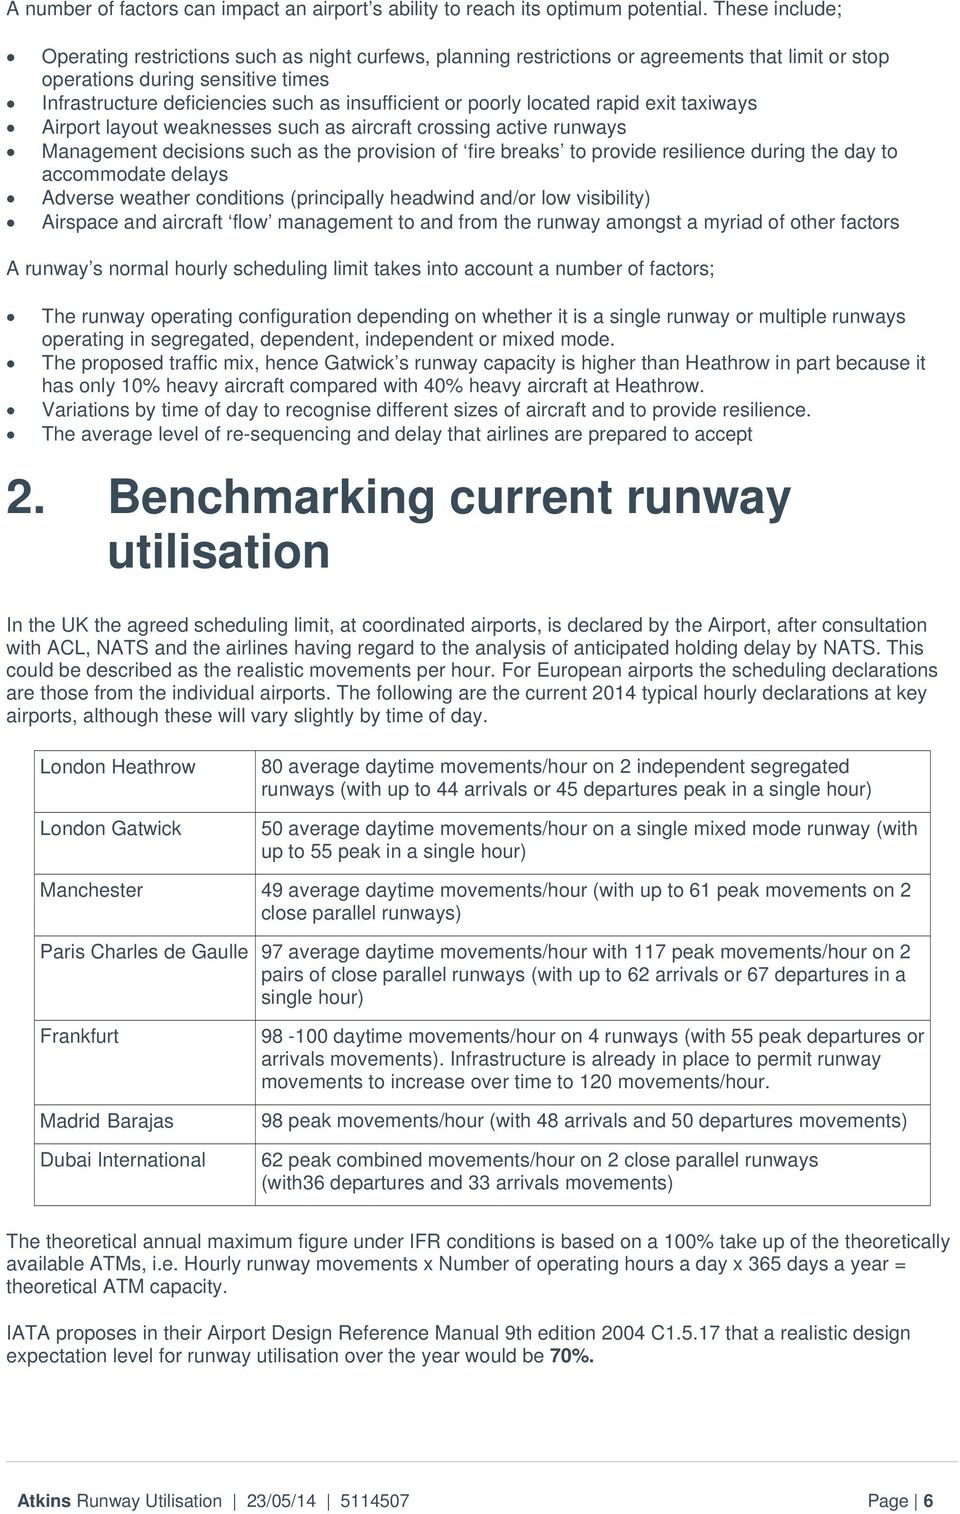 or poorly located rapid exit taxiways Airport layout weaknesses such as aircraft crossing active runways Management decisions such as the provision of fire breaks to provide resilience during the day